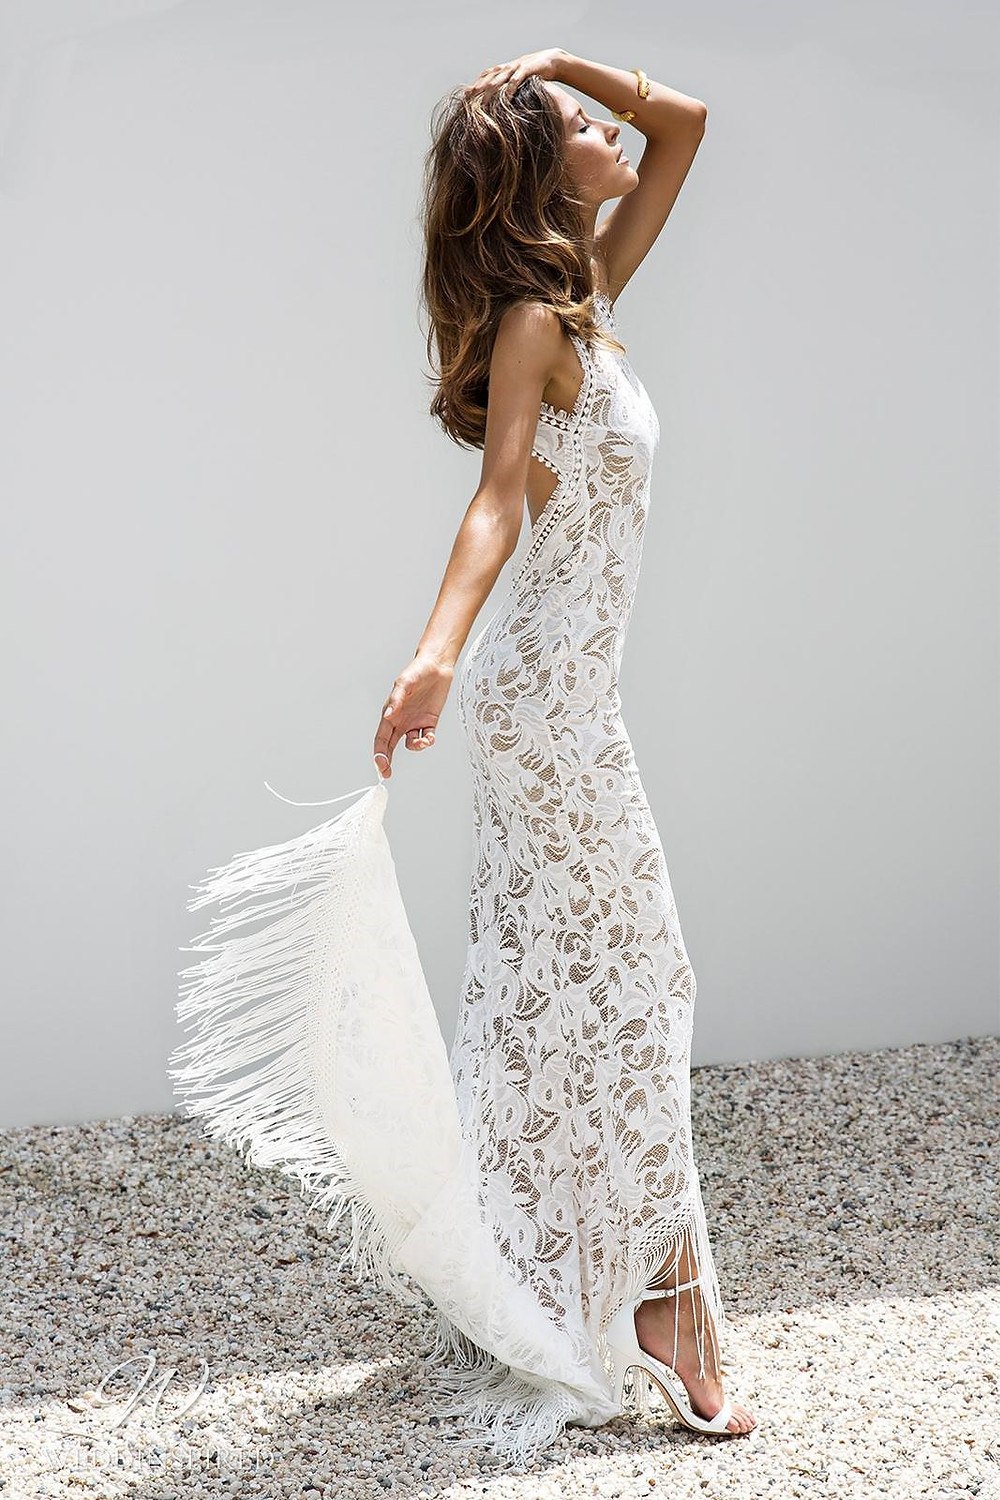 A Grace Loves Lace fitted lace mermaid wedding dress with a fringe train and an open back with a high neckline